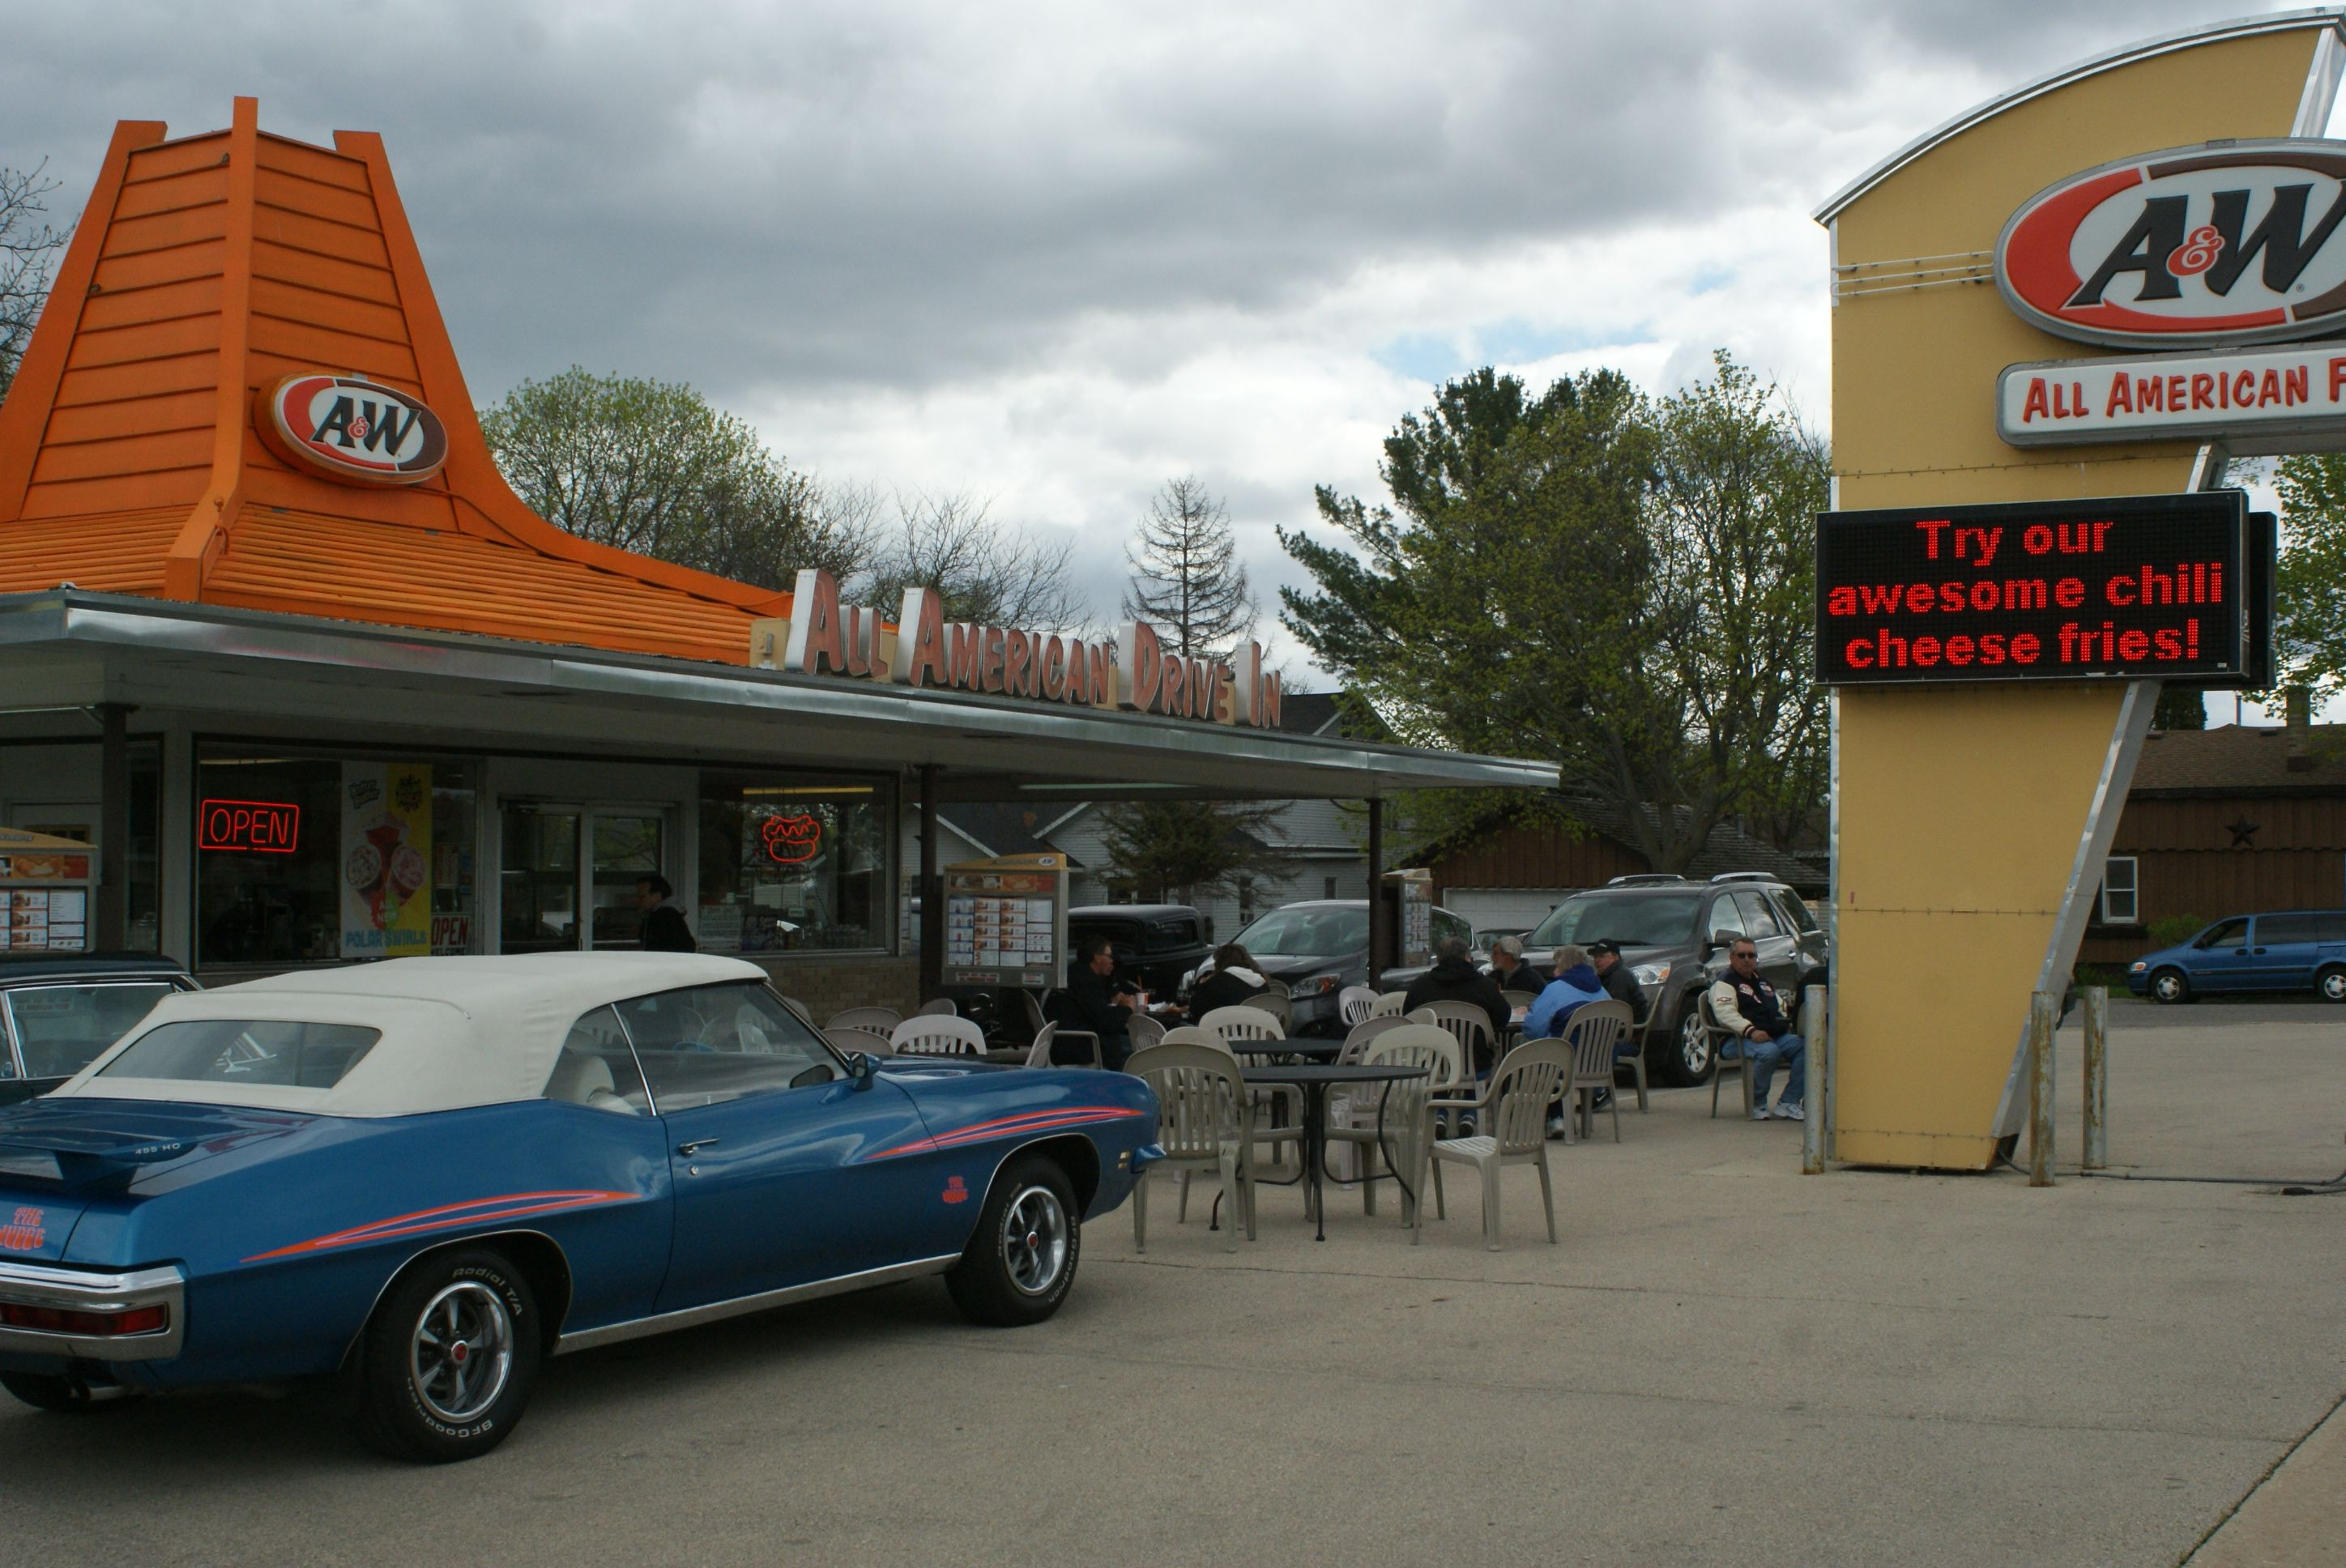 2014-Classic Cars Cruisin\' to A and W on their way to Wisconsin ...